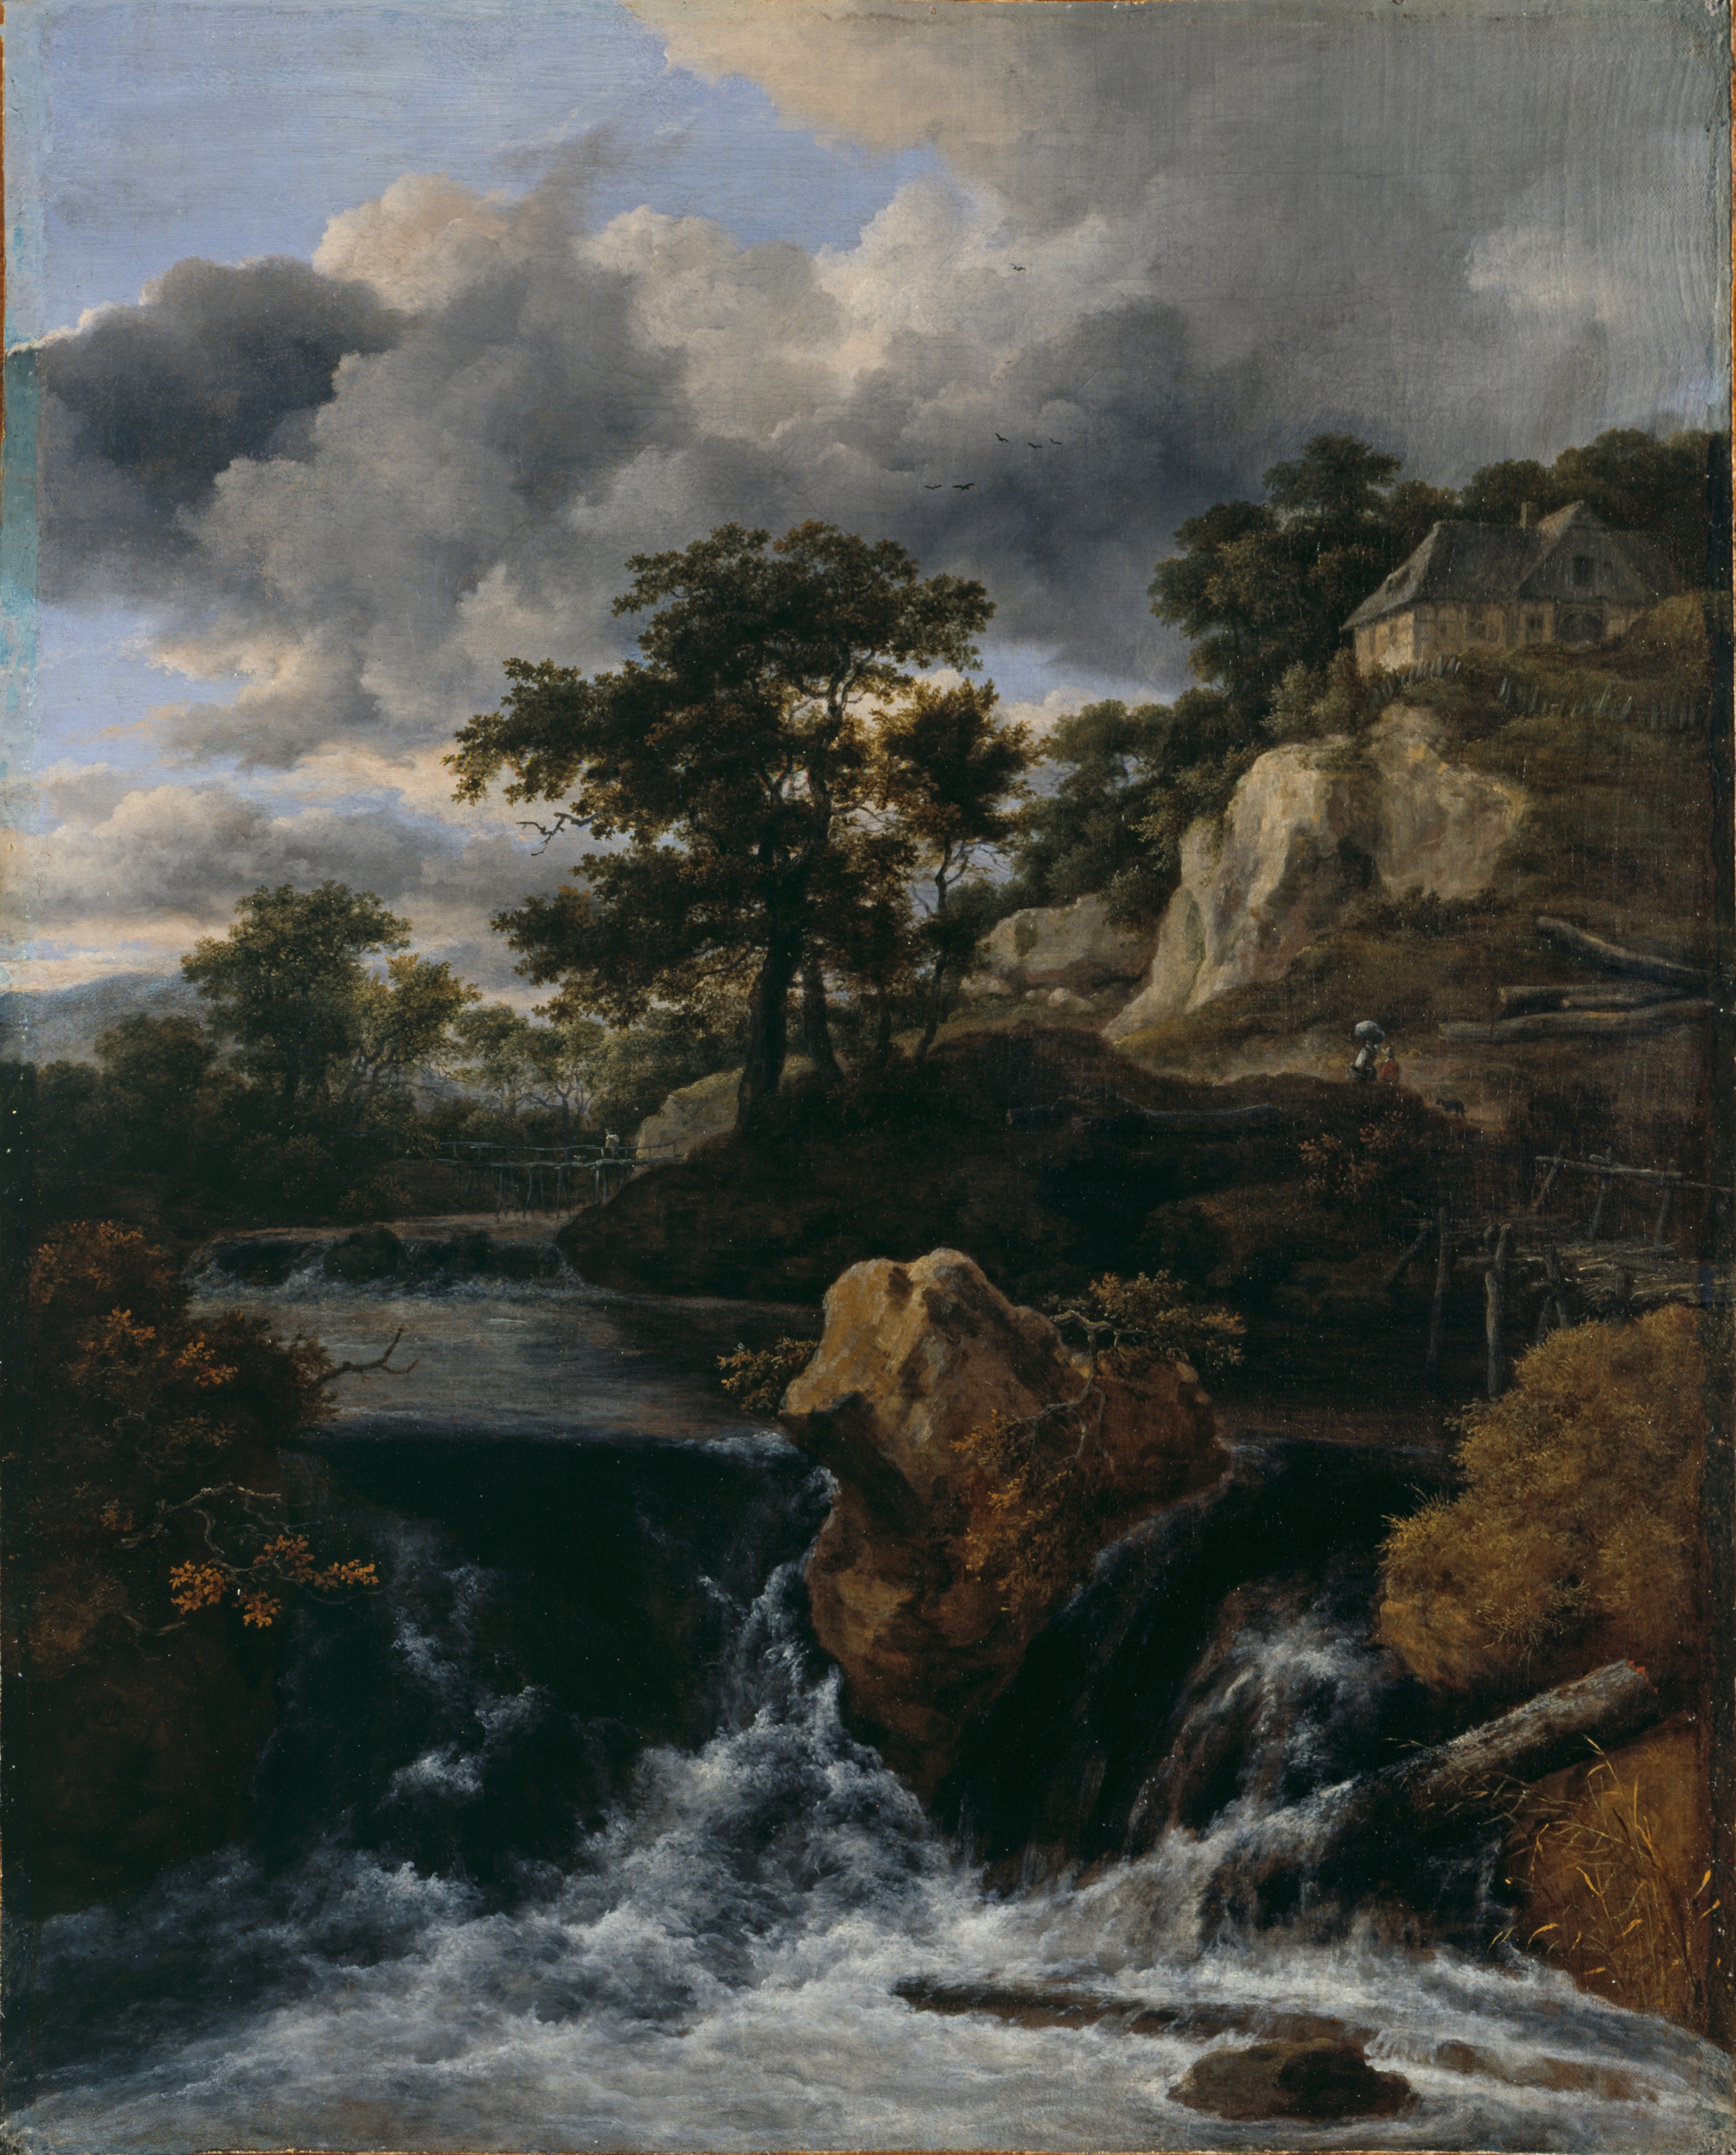 file jacob van ruisdael huegellandschaft mit wasserfall. Black Bedroom Furniture Sets. Home Design Ideas